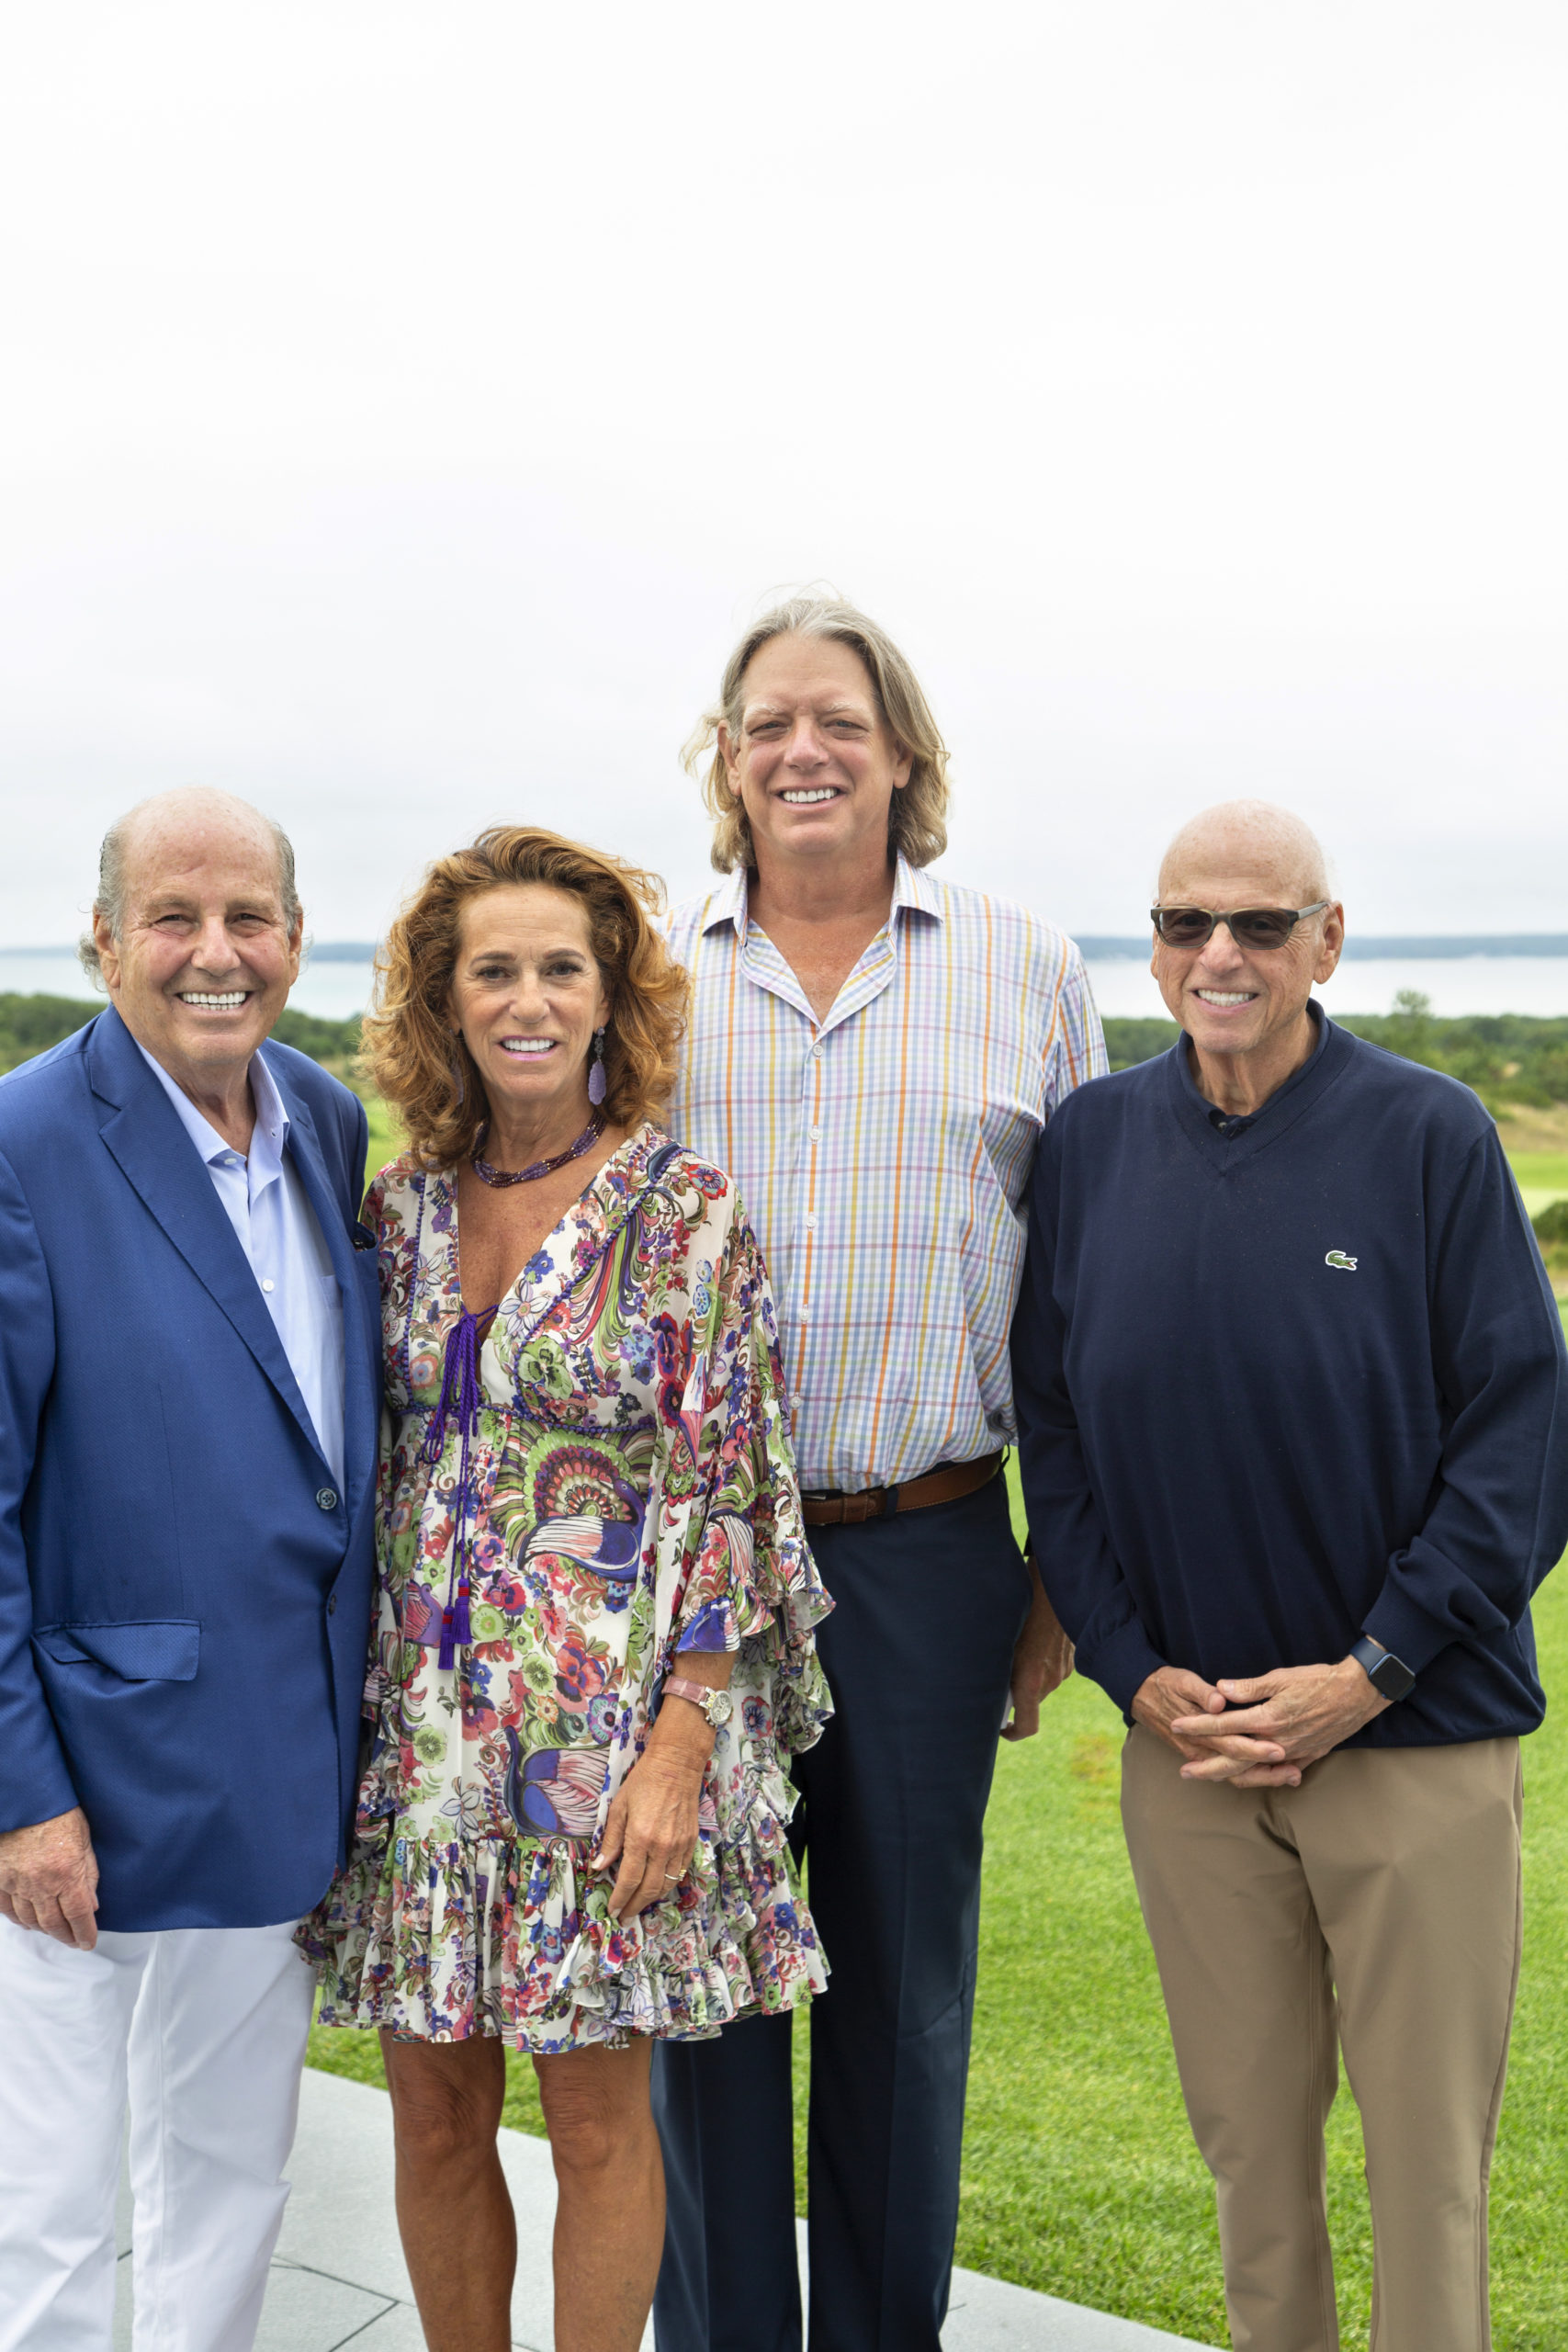 Jeffrey Feil, Debbrah Lee Charatan, Lloyd Goldmaan and Howard Lorber at the U.S. Holocaust Memorial Museum New YOrk Real Estate Event at The Bridge in Bridgehampton on August 5. The event raised funds in support of the museum's mission to preserve the evidence and memory of the Holocaust.